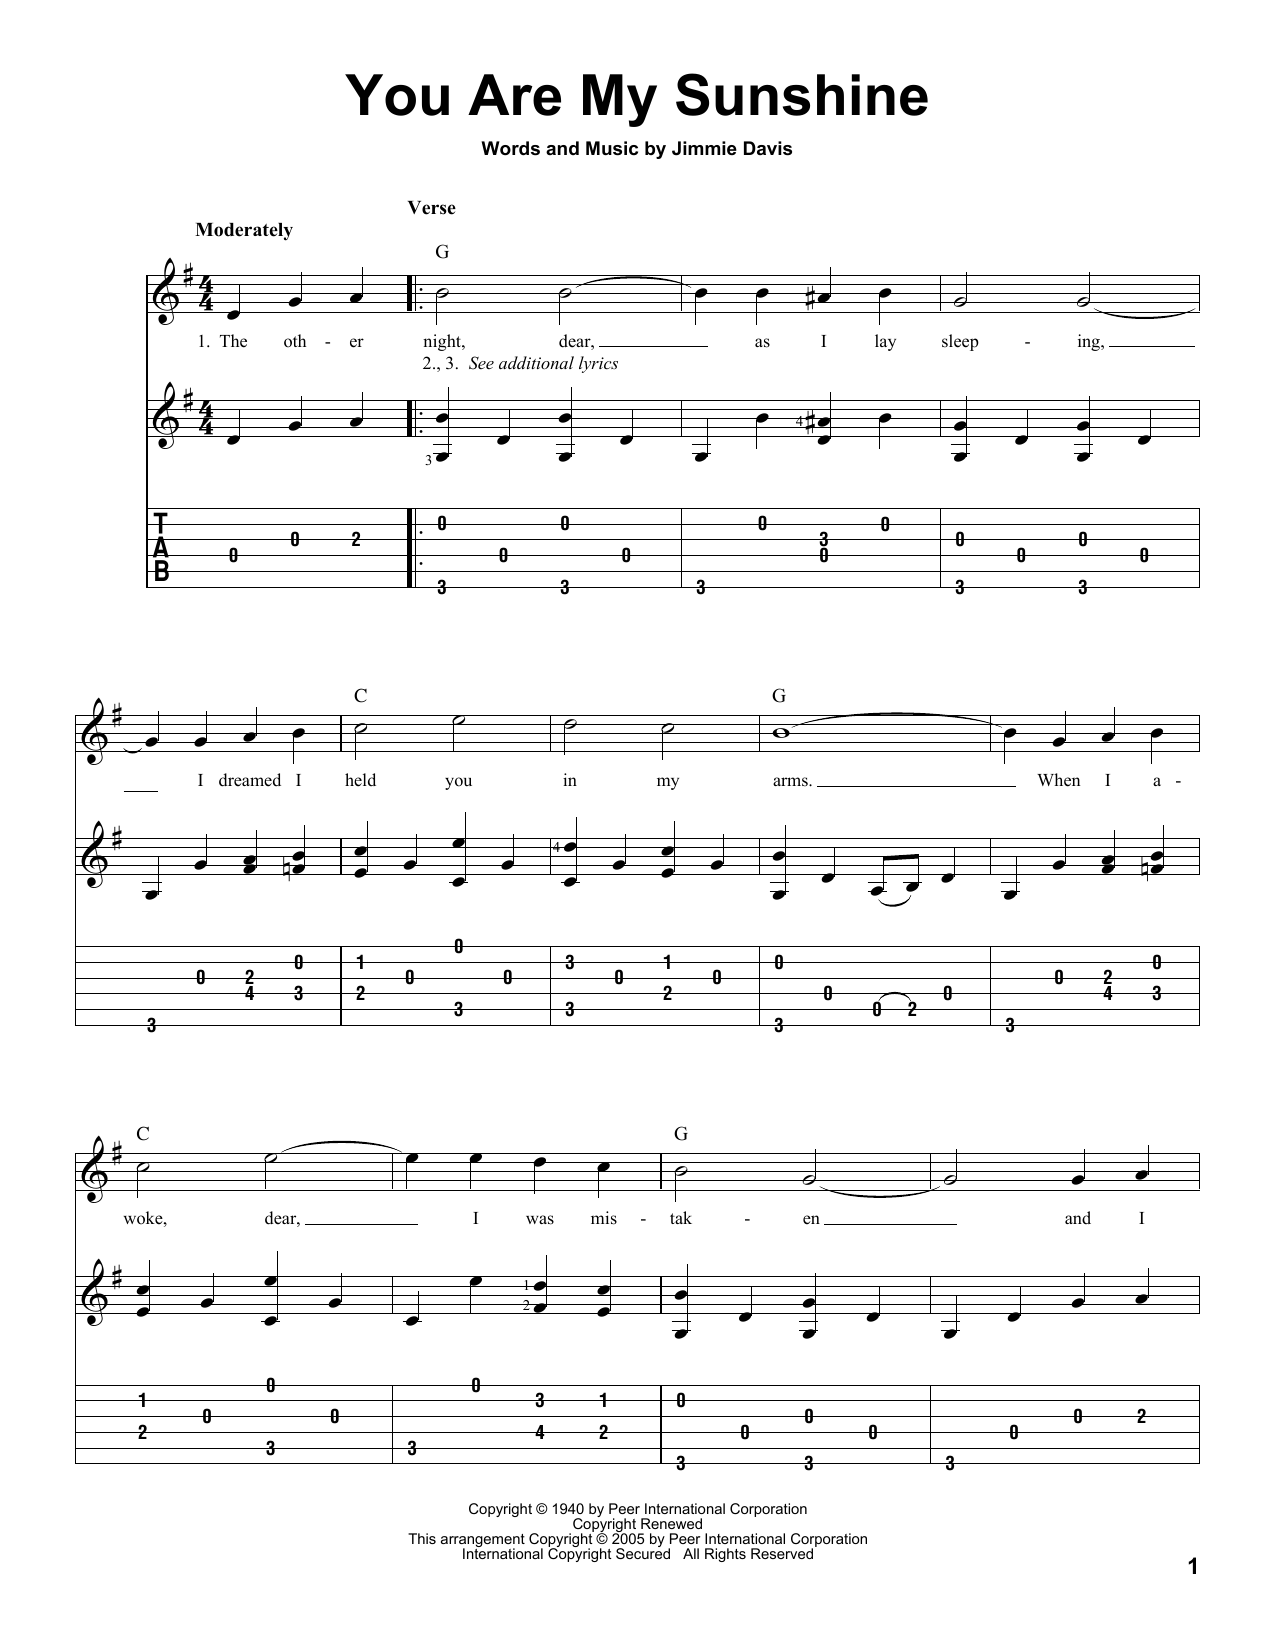 Jimmie Davis 'You Are My Sunshine' Sheet Music Notes, Chords | Download  Printable Guitar Tab - SKU: 83108